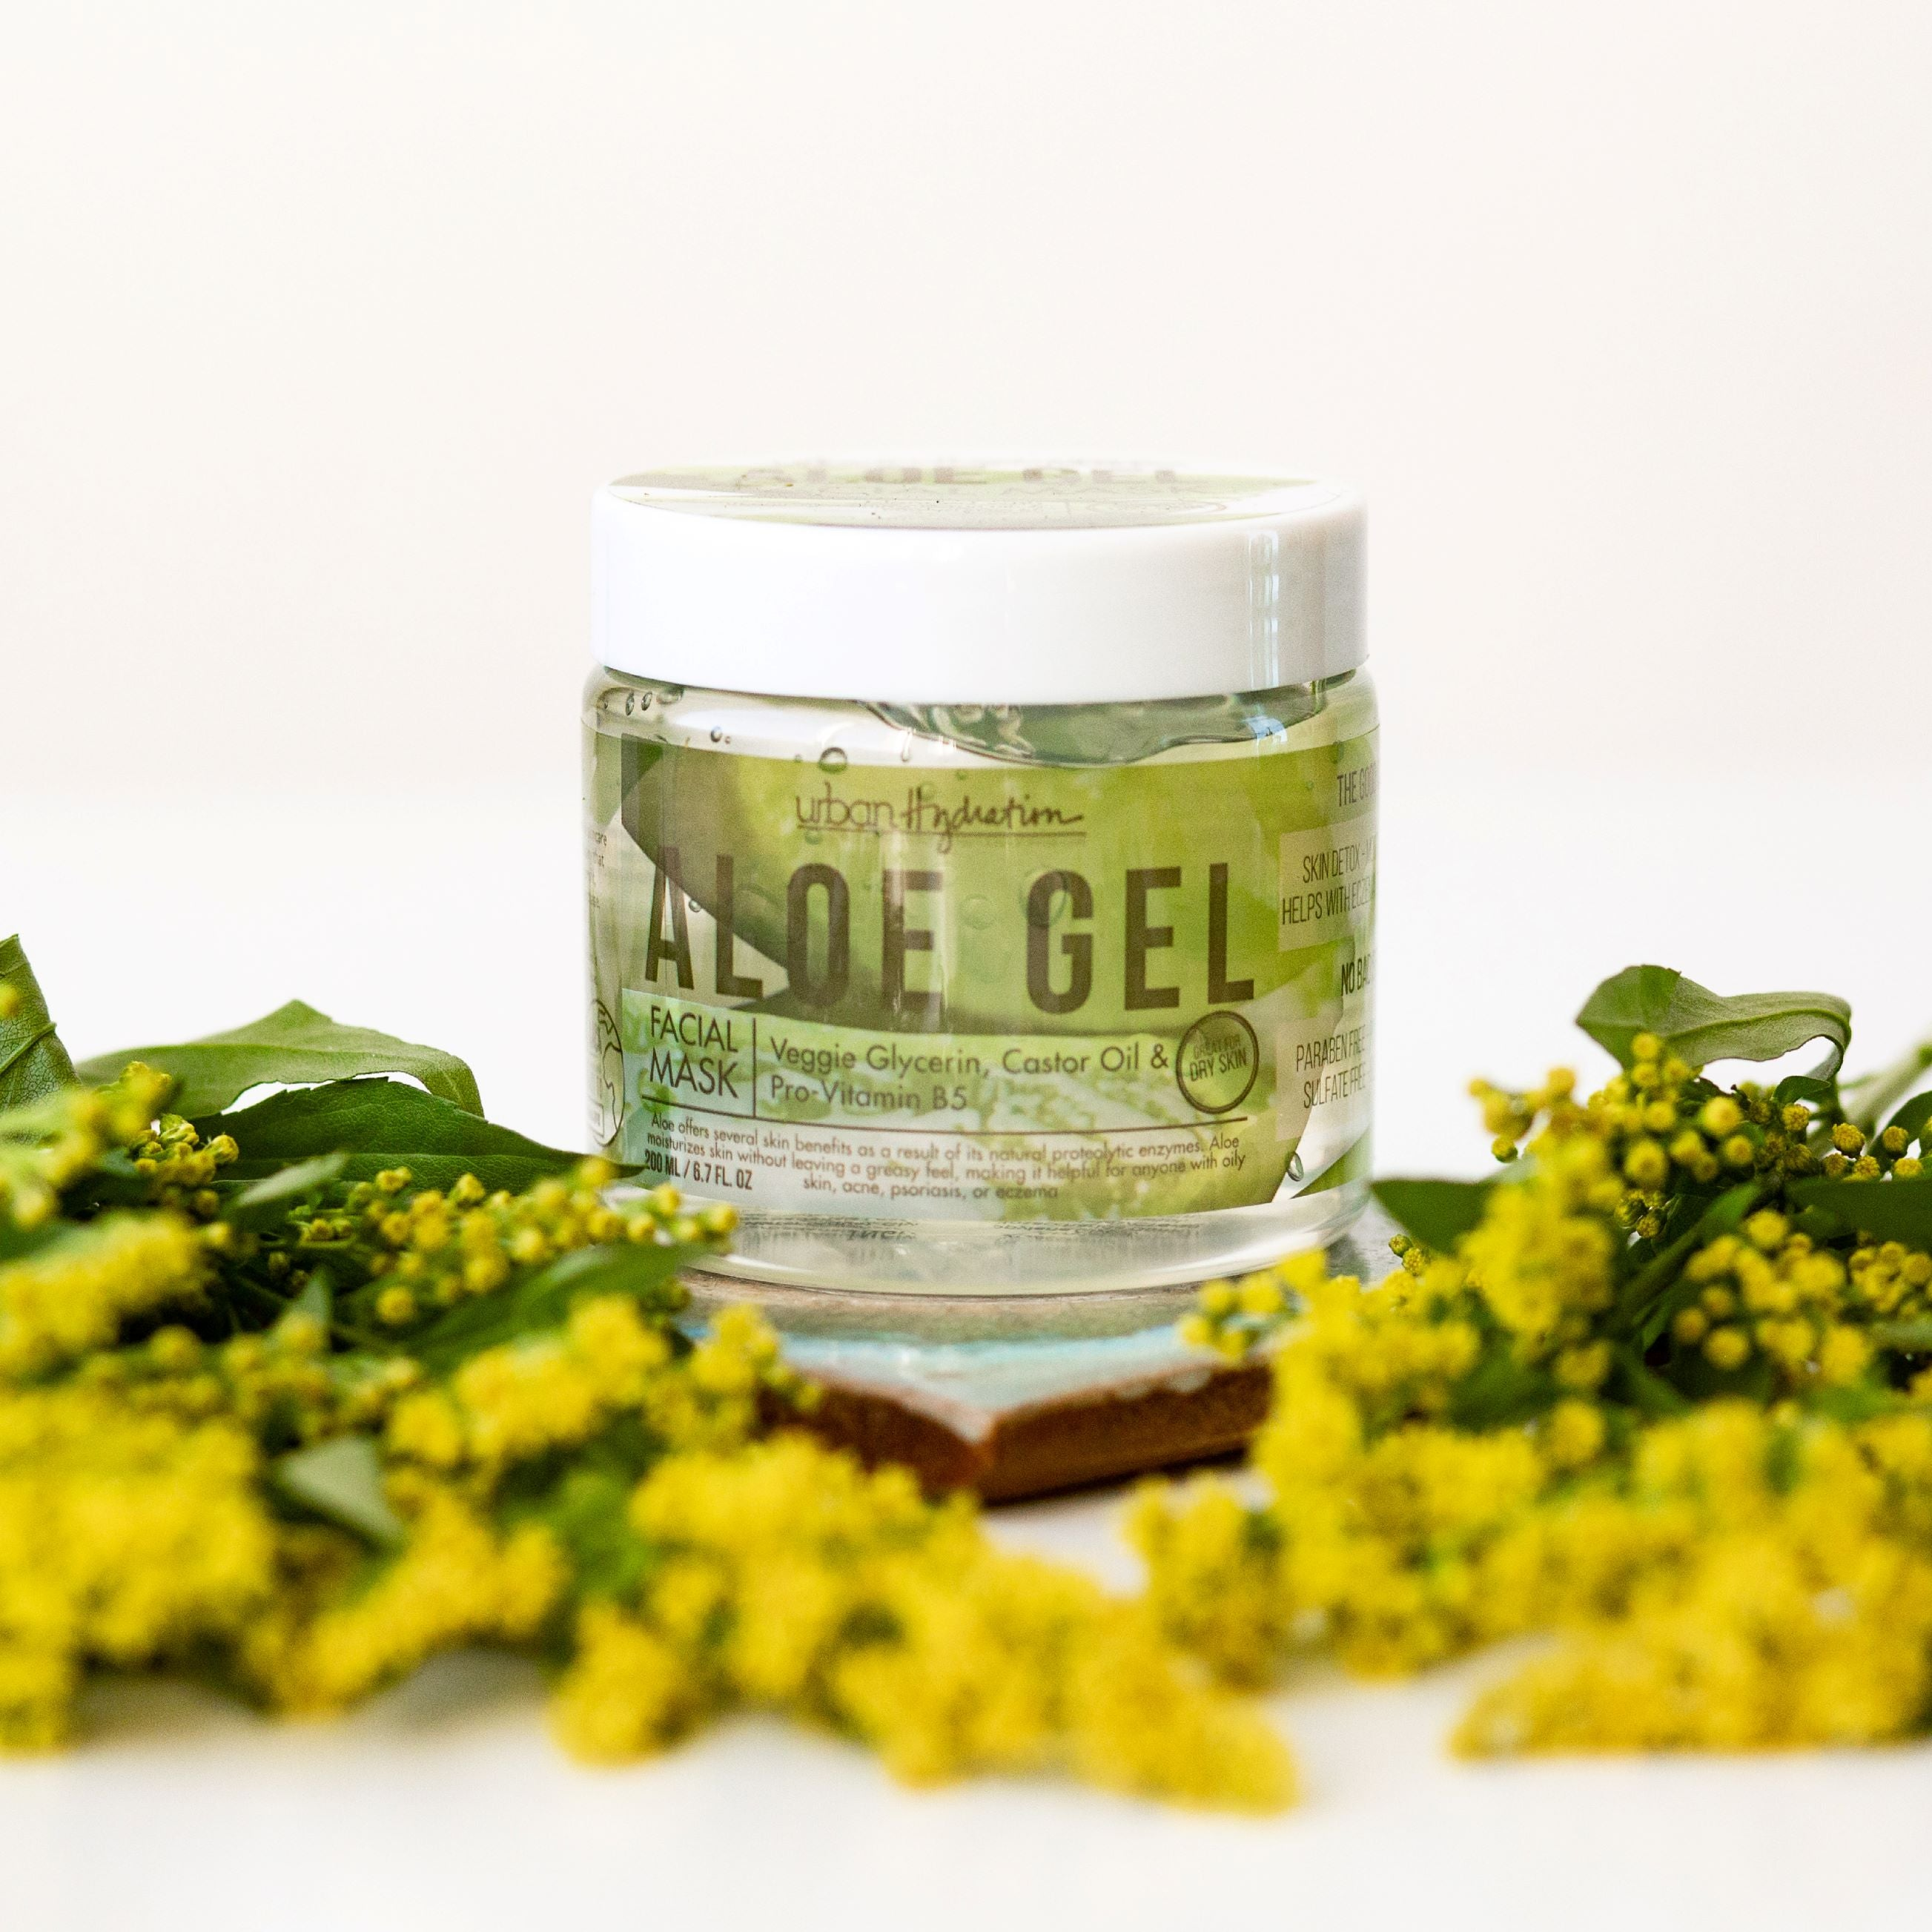 Bright & Balanced Aloe Vera Leaf Gel Face Mask